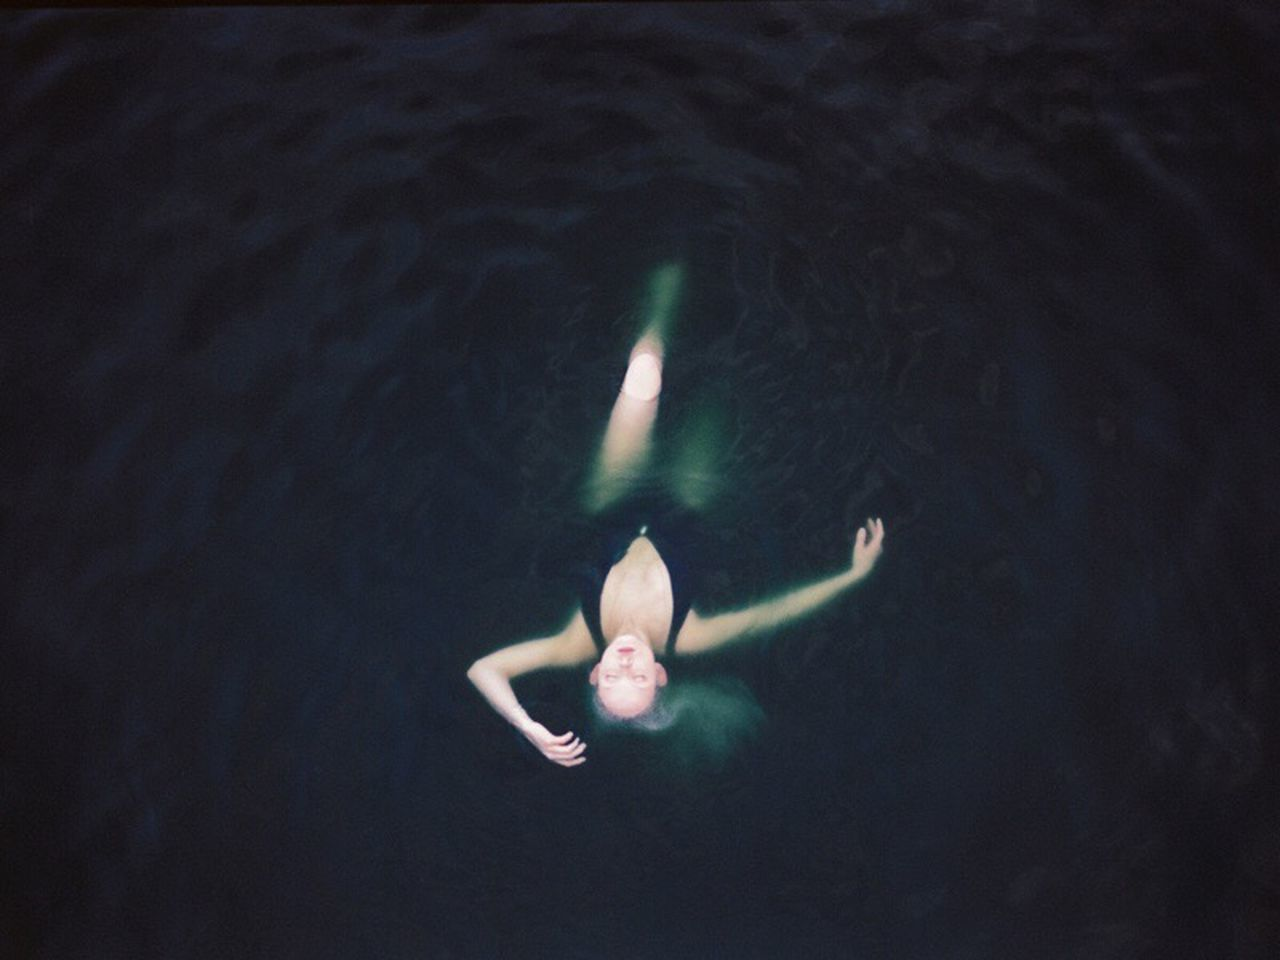 HIGH ANGLE VIEW OF SWIMMING IN WATER